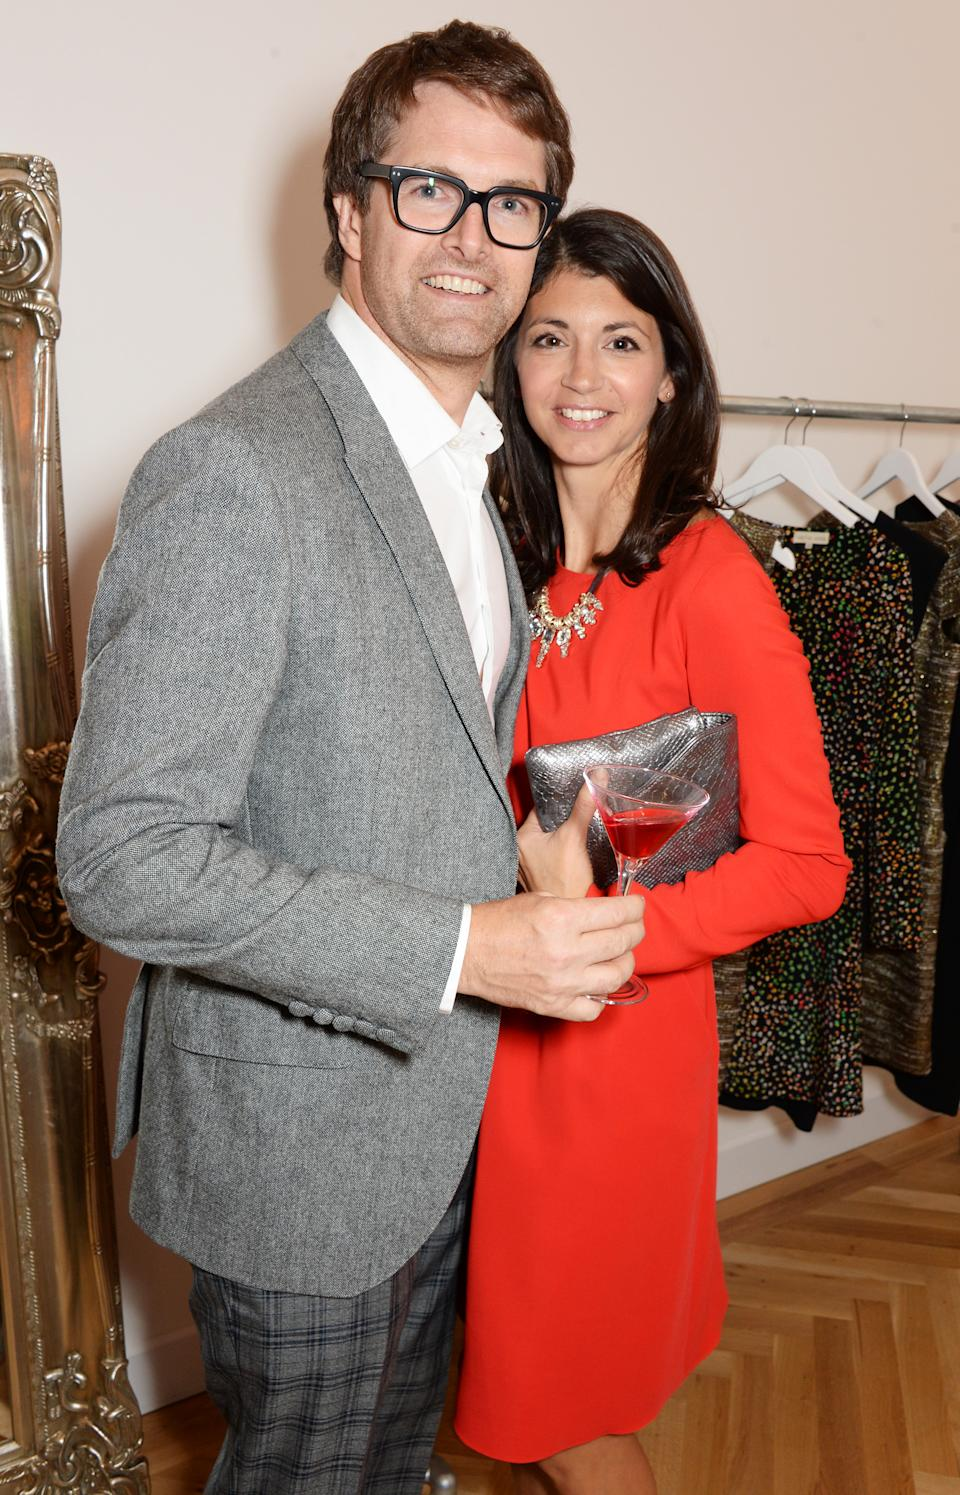 LONDON, ENGLAND - SEPTEMBER 23:  Oliver Tress (L) and Gina Coladangelo attend the launch of designer and entrepreneur Tabitha Webb's first retail store 'Tabitha Webb' on Elizabeth St, Belgravia on September 23, 2014 in London, England.  (Photo by David M. Benett/Getty Images for Tabitha Webb)